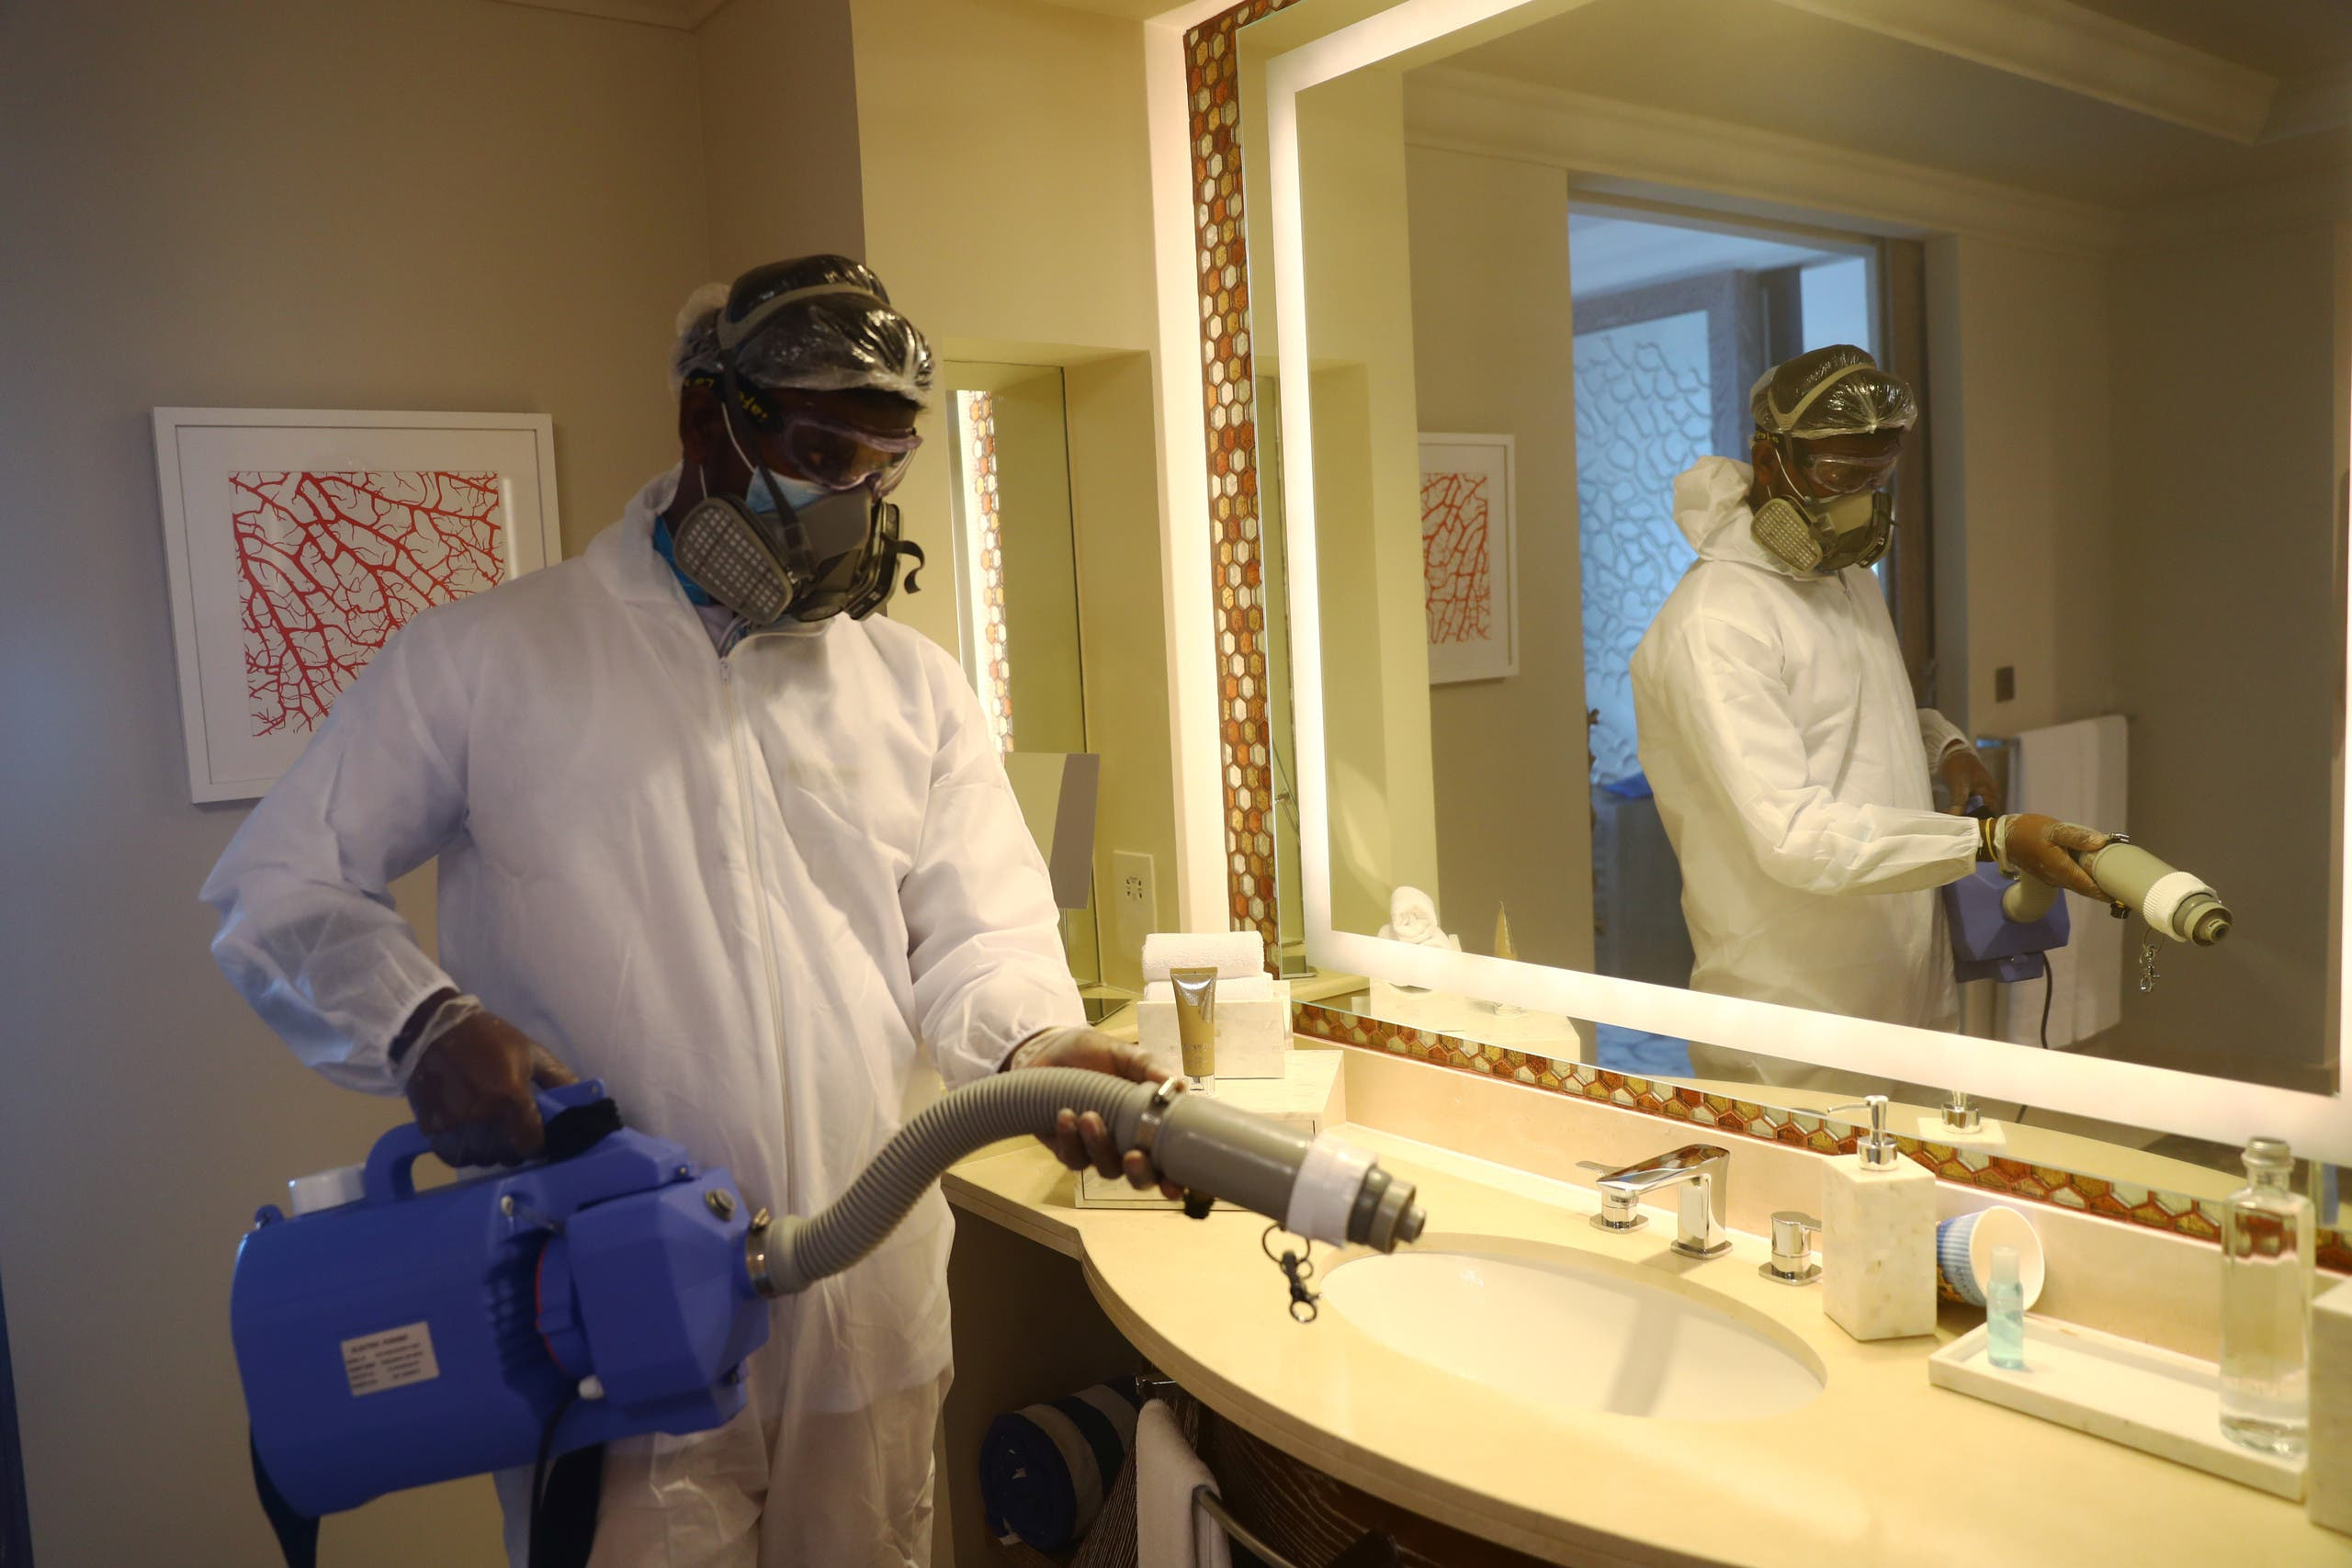 A worker wearing a protective suit sterilizes a bathroom in the Atlantis The Palm hotel in Dubai, United Arab Emirates July 7, 2020. (Reuters)